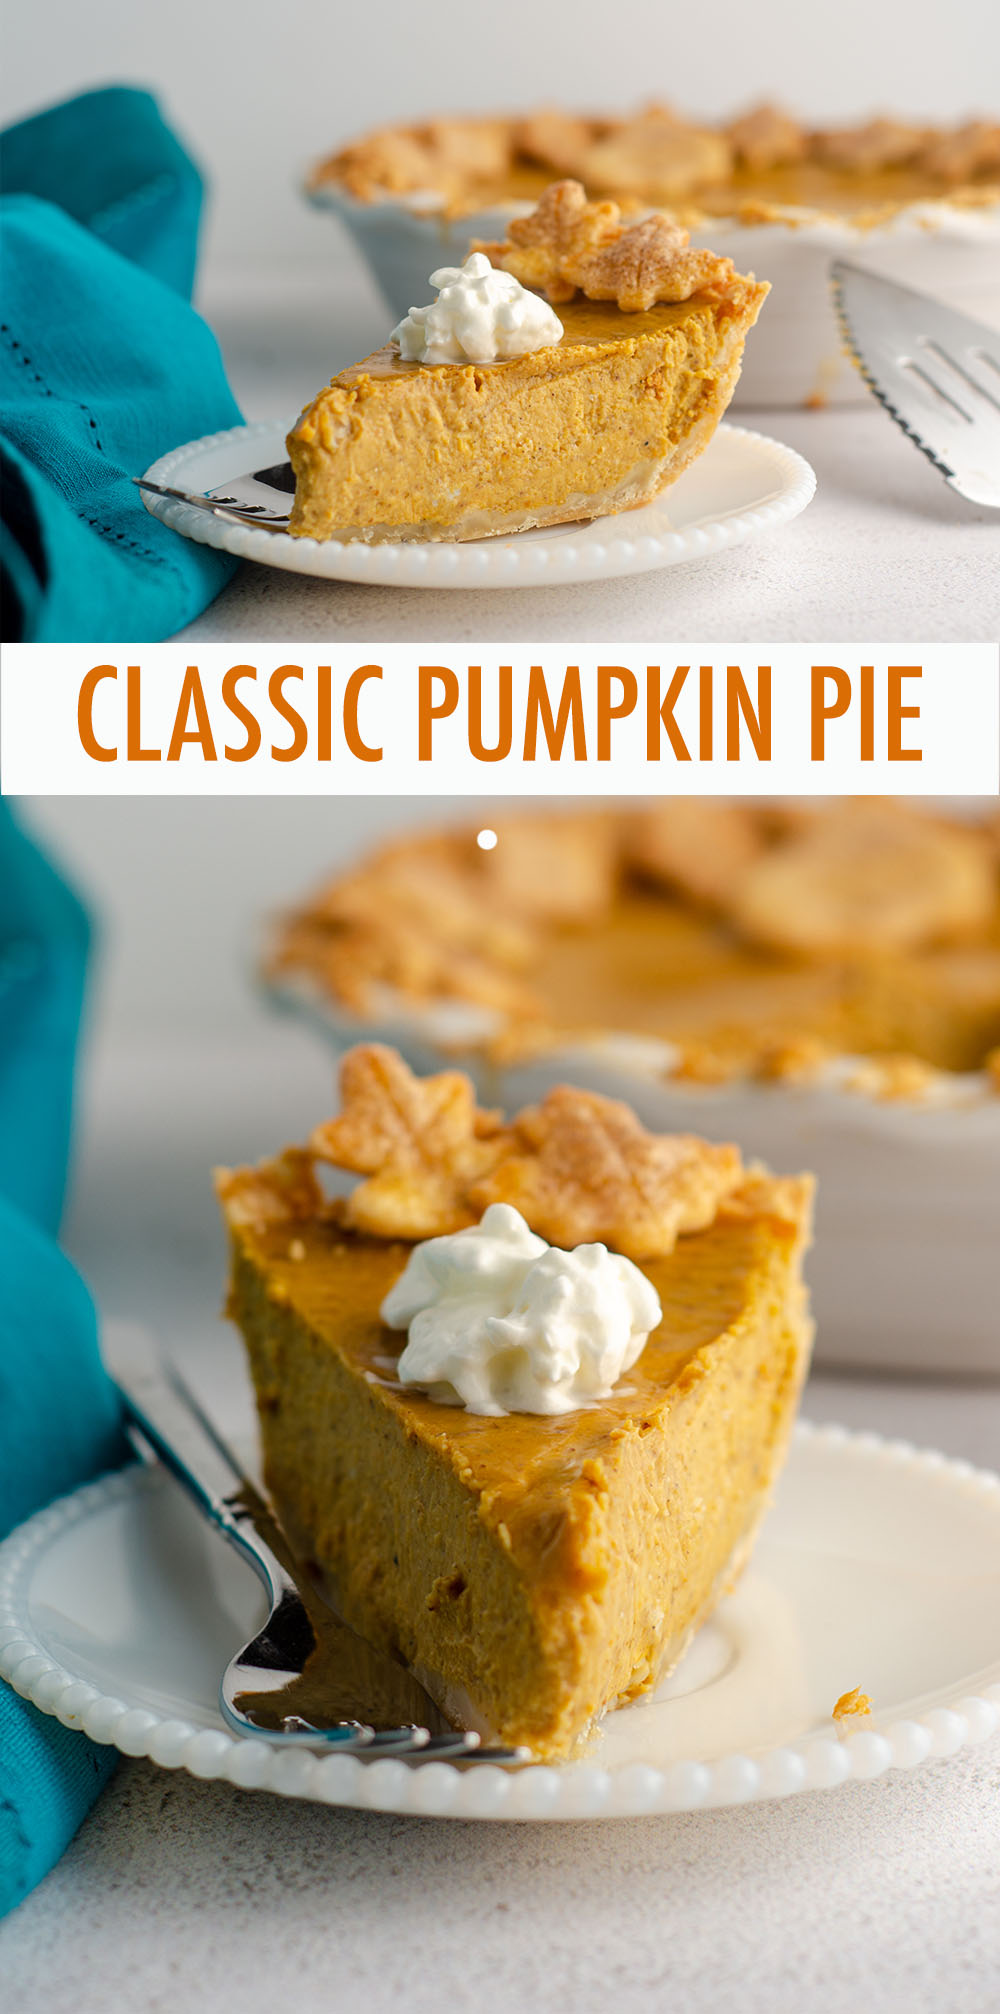 A simple recipe for my go-to pumpkin pie. Bursting with flavor thanks to a few surprise ingredients, rich, smooth, and made even better baked in my favorite homemade pie crust.